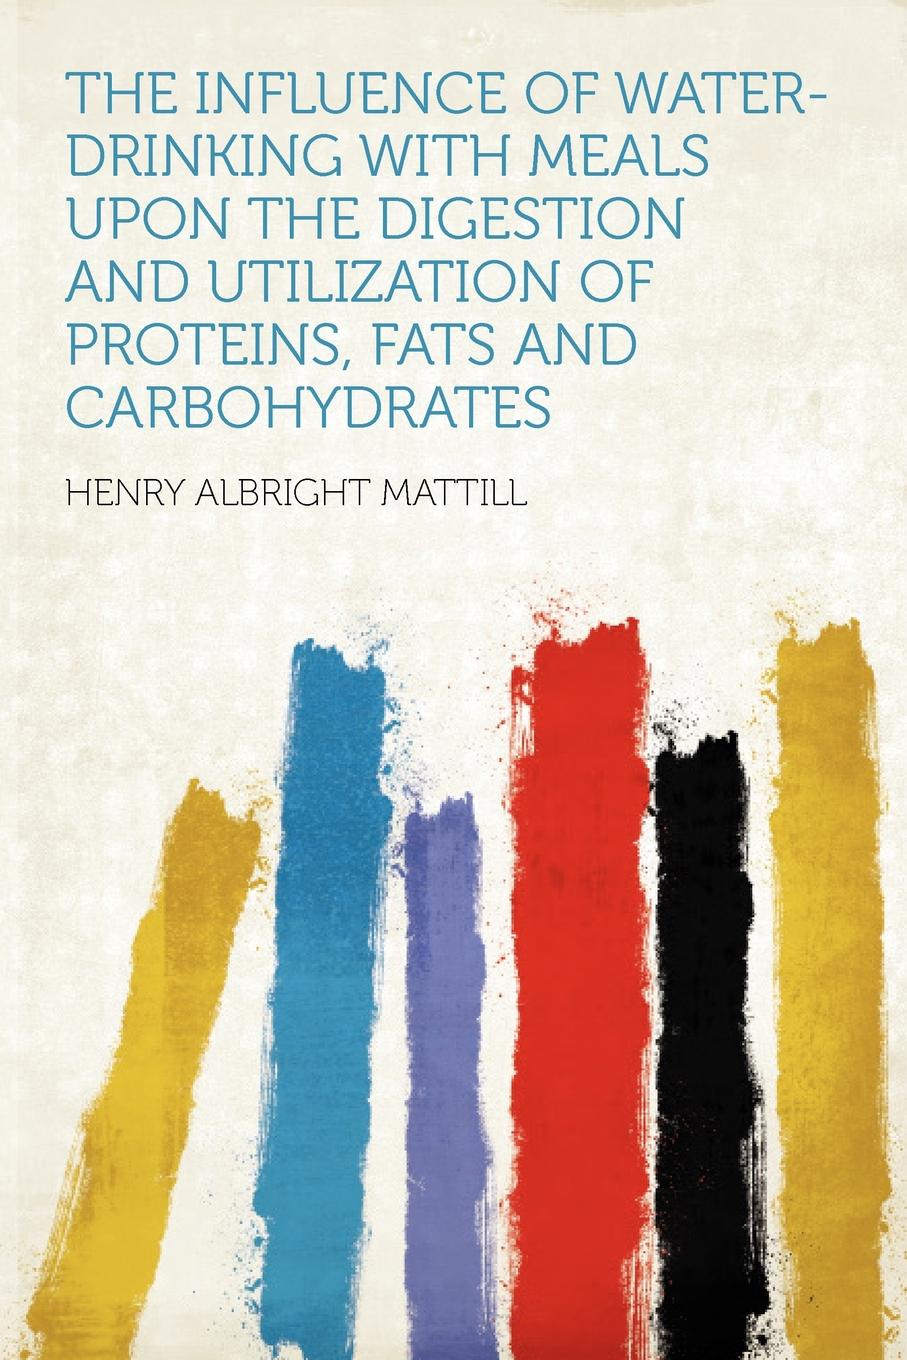 Henry Albright Mattill The Influence of Water-drinking With Meals Upon the Digestion and Utilization of Proteins, Fats and Carbohydrates carbohydrates 14